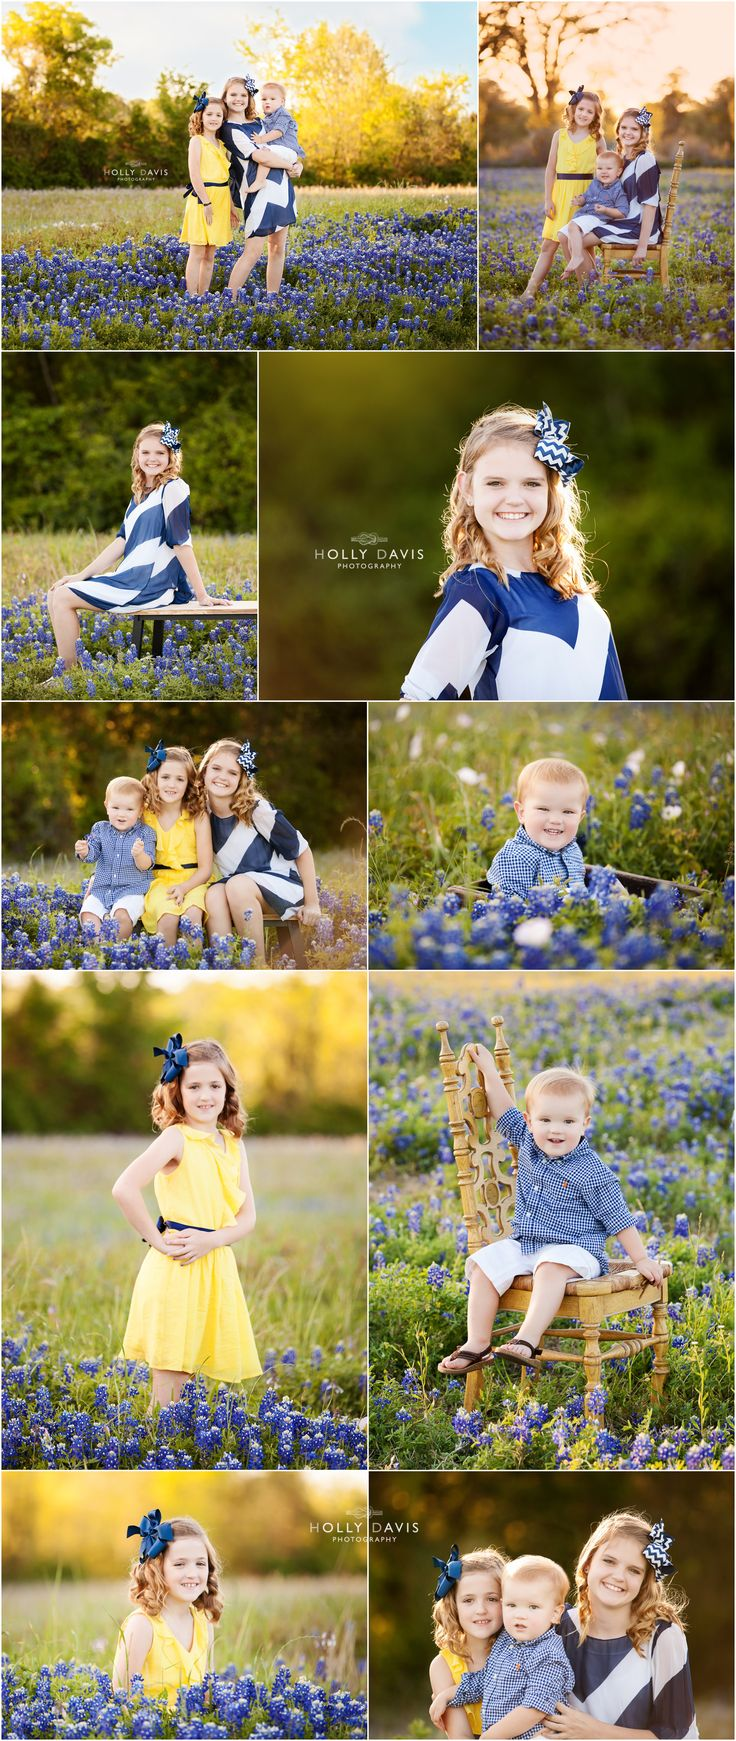 Bluebonnet sessions, Posing Kids, Sibling Poses Holly Davis Photography | The Woodlands, TX